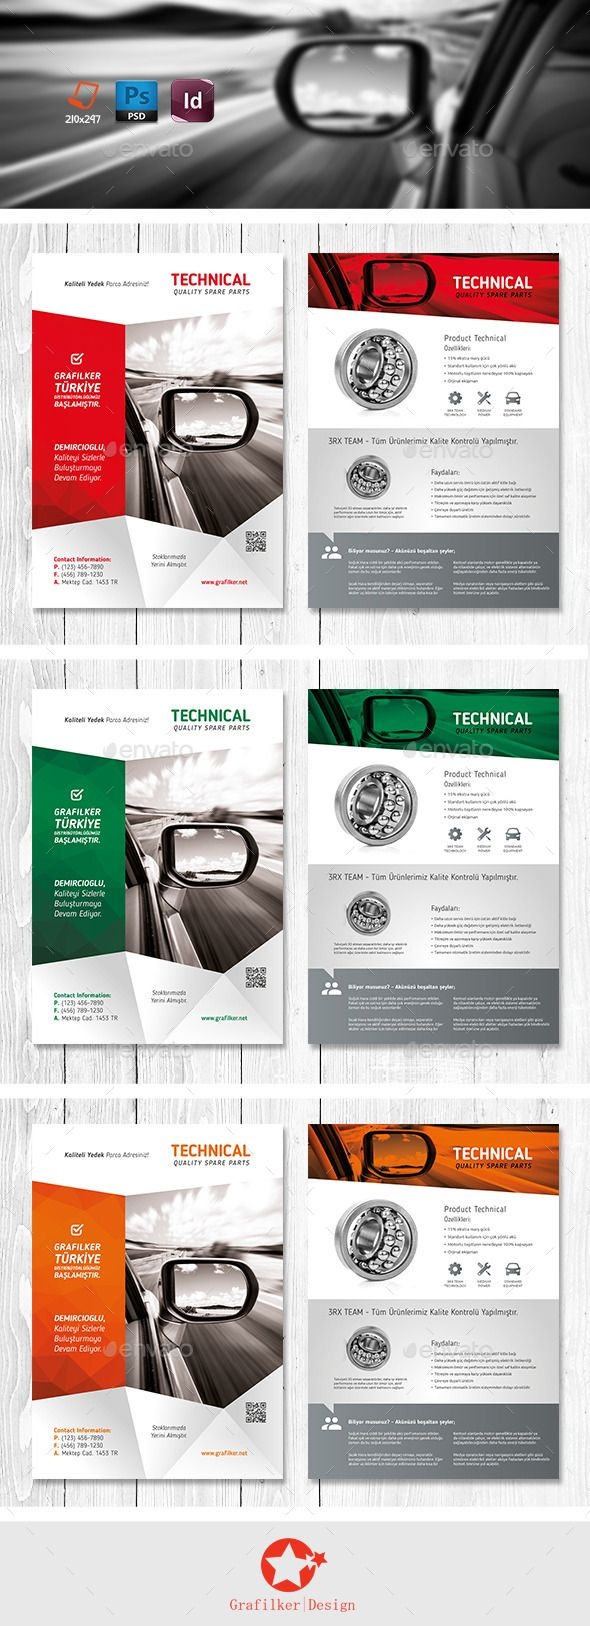 817 best images about type layout inspiration on for Technical brochure template